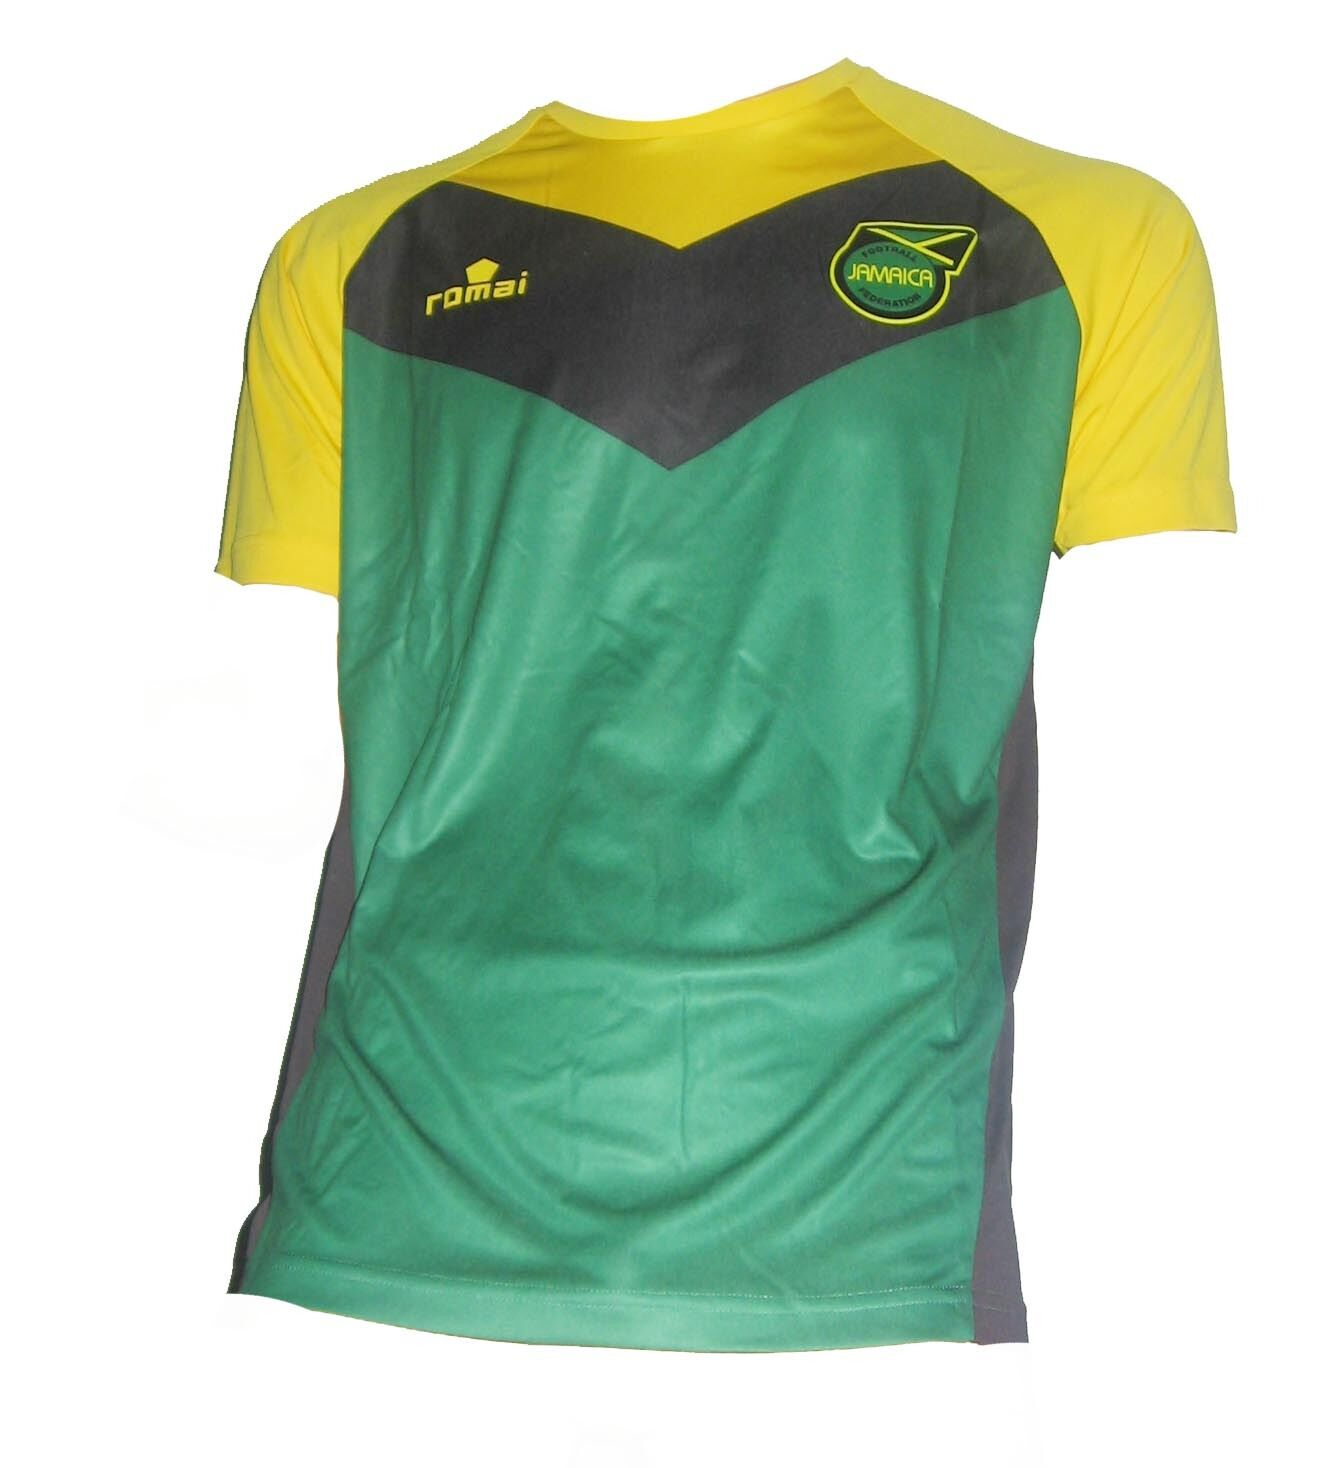 Jamaika Trikot Training 2015 16 Romai The Reggae Boyz